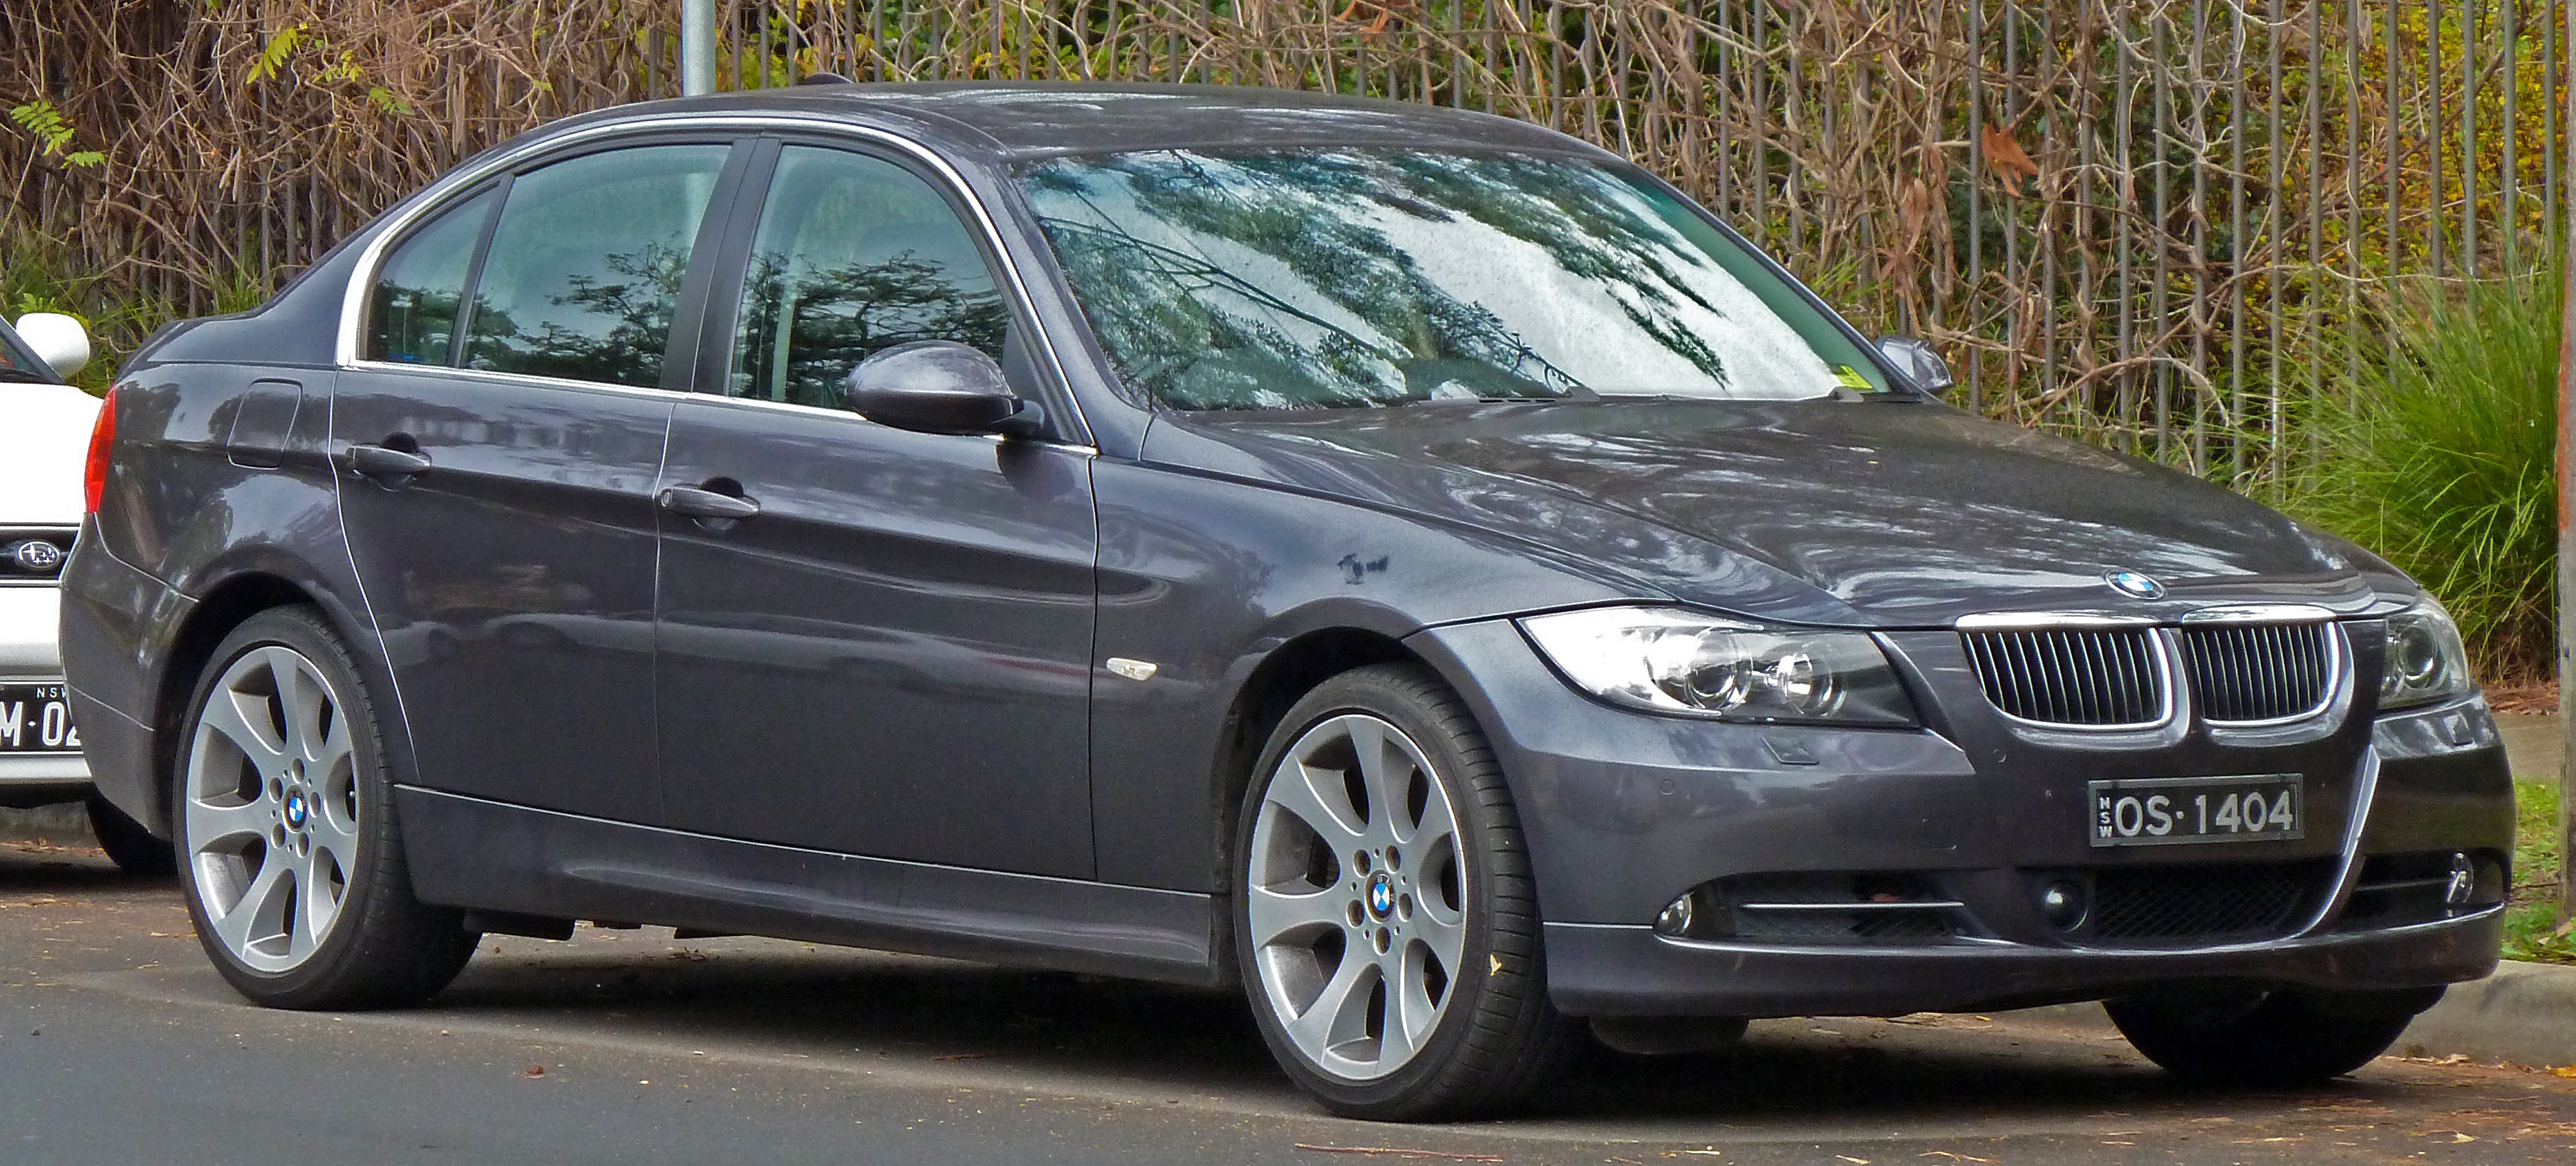 File:2005-2006 BMW 330i (E90) sedan 02.jpg - Wikimedia Commons